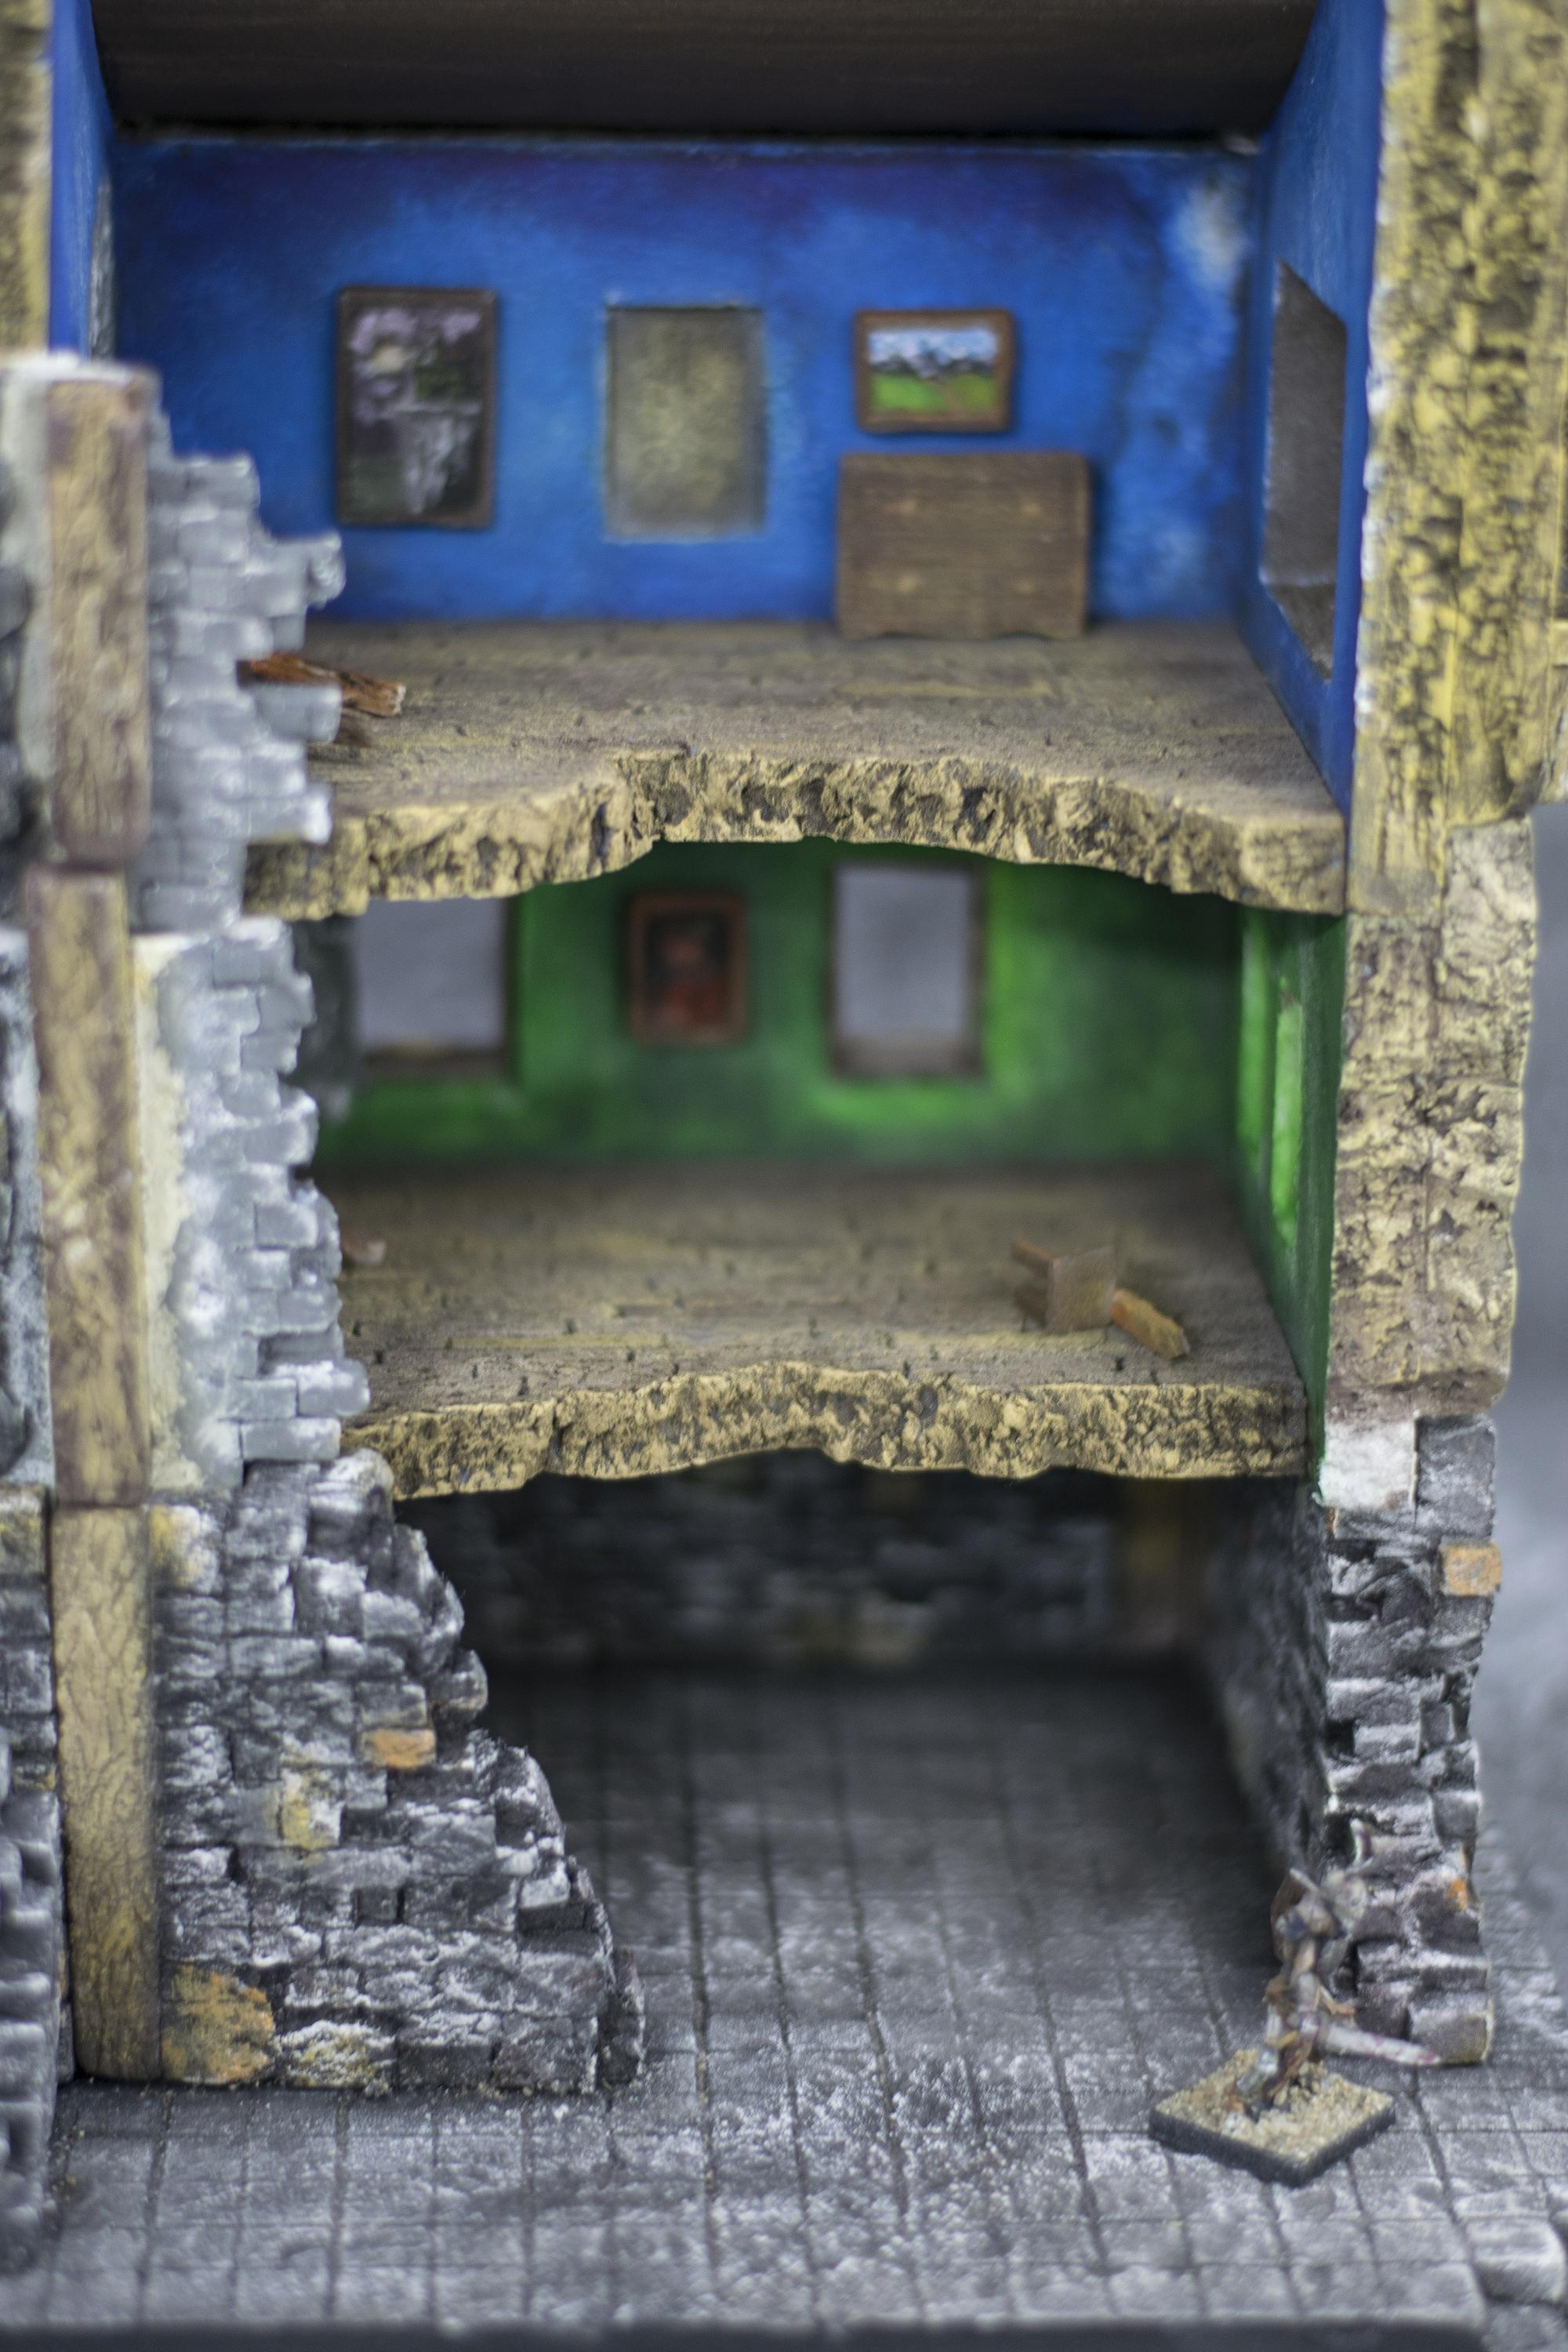 Architecture, Chaos, Diorama, Game, House, Mansion, Modular, Mordheim, Painted, Paintings, Ruined, Ruins, Set, Stonework, Terrain, War, Wargame, Warhammer Fantasy, Witch Hunters